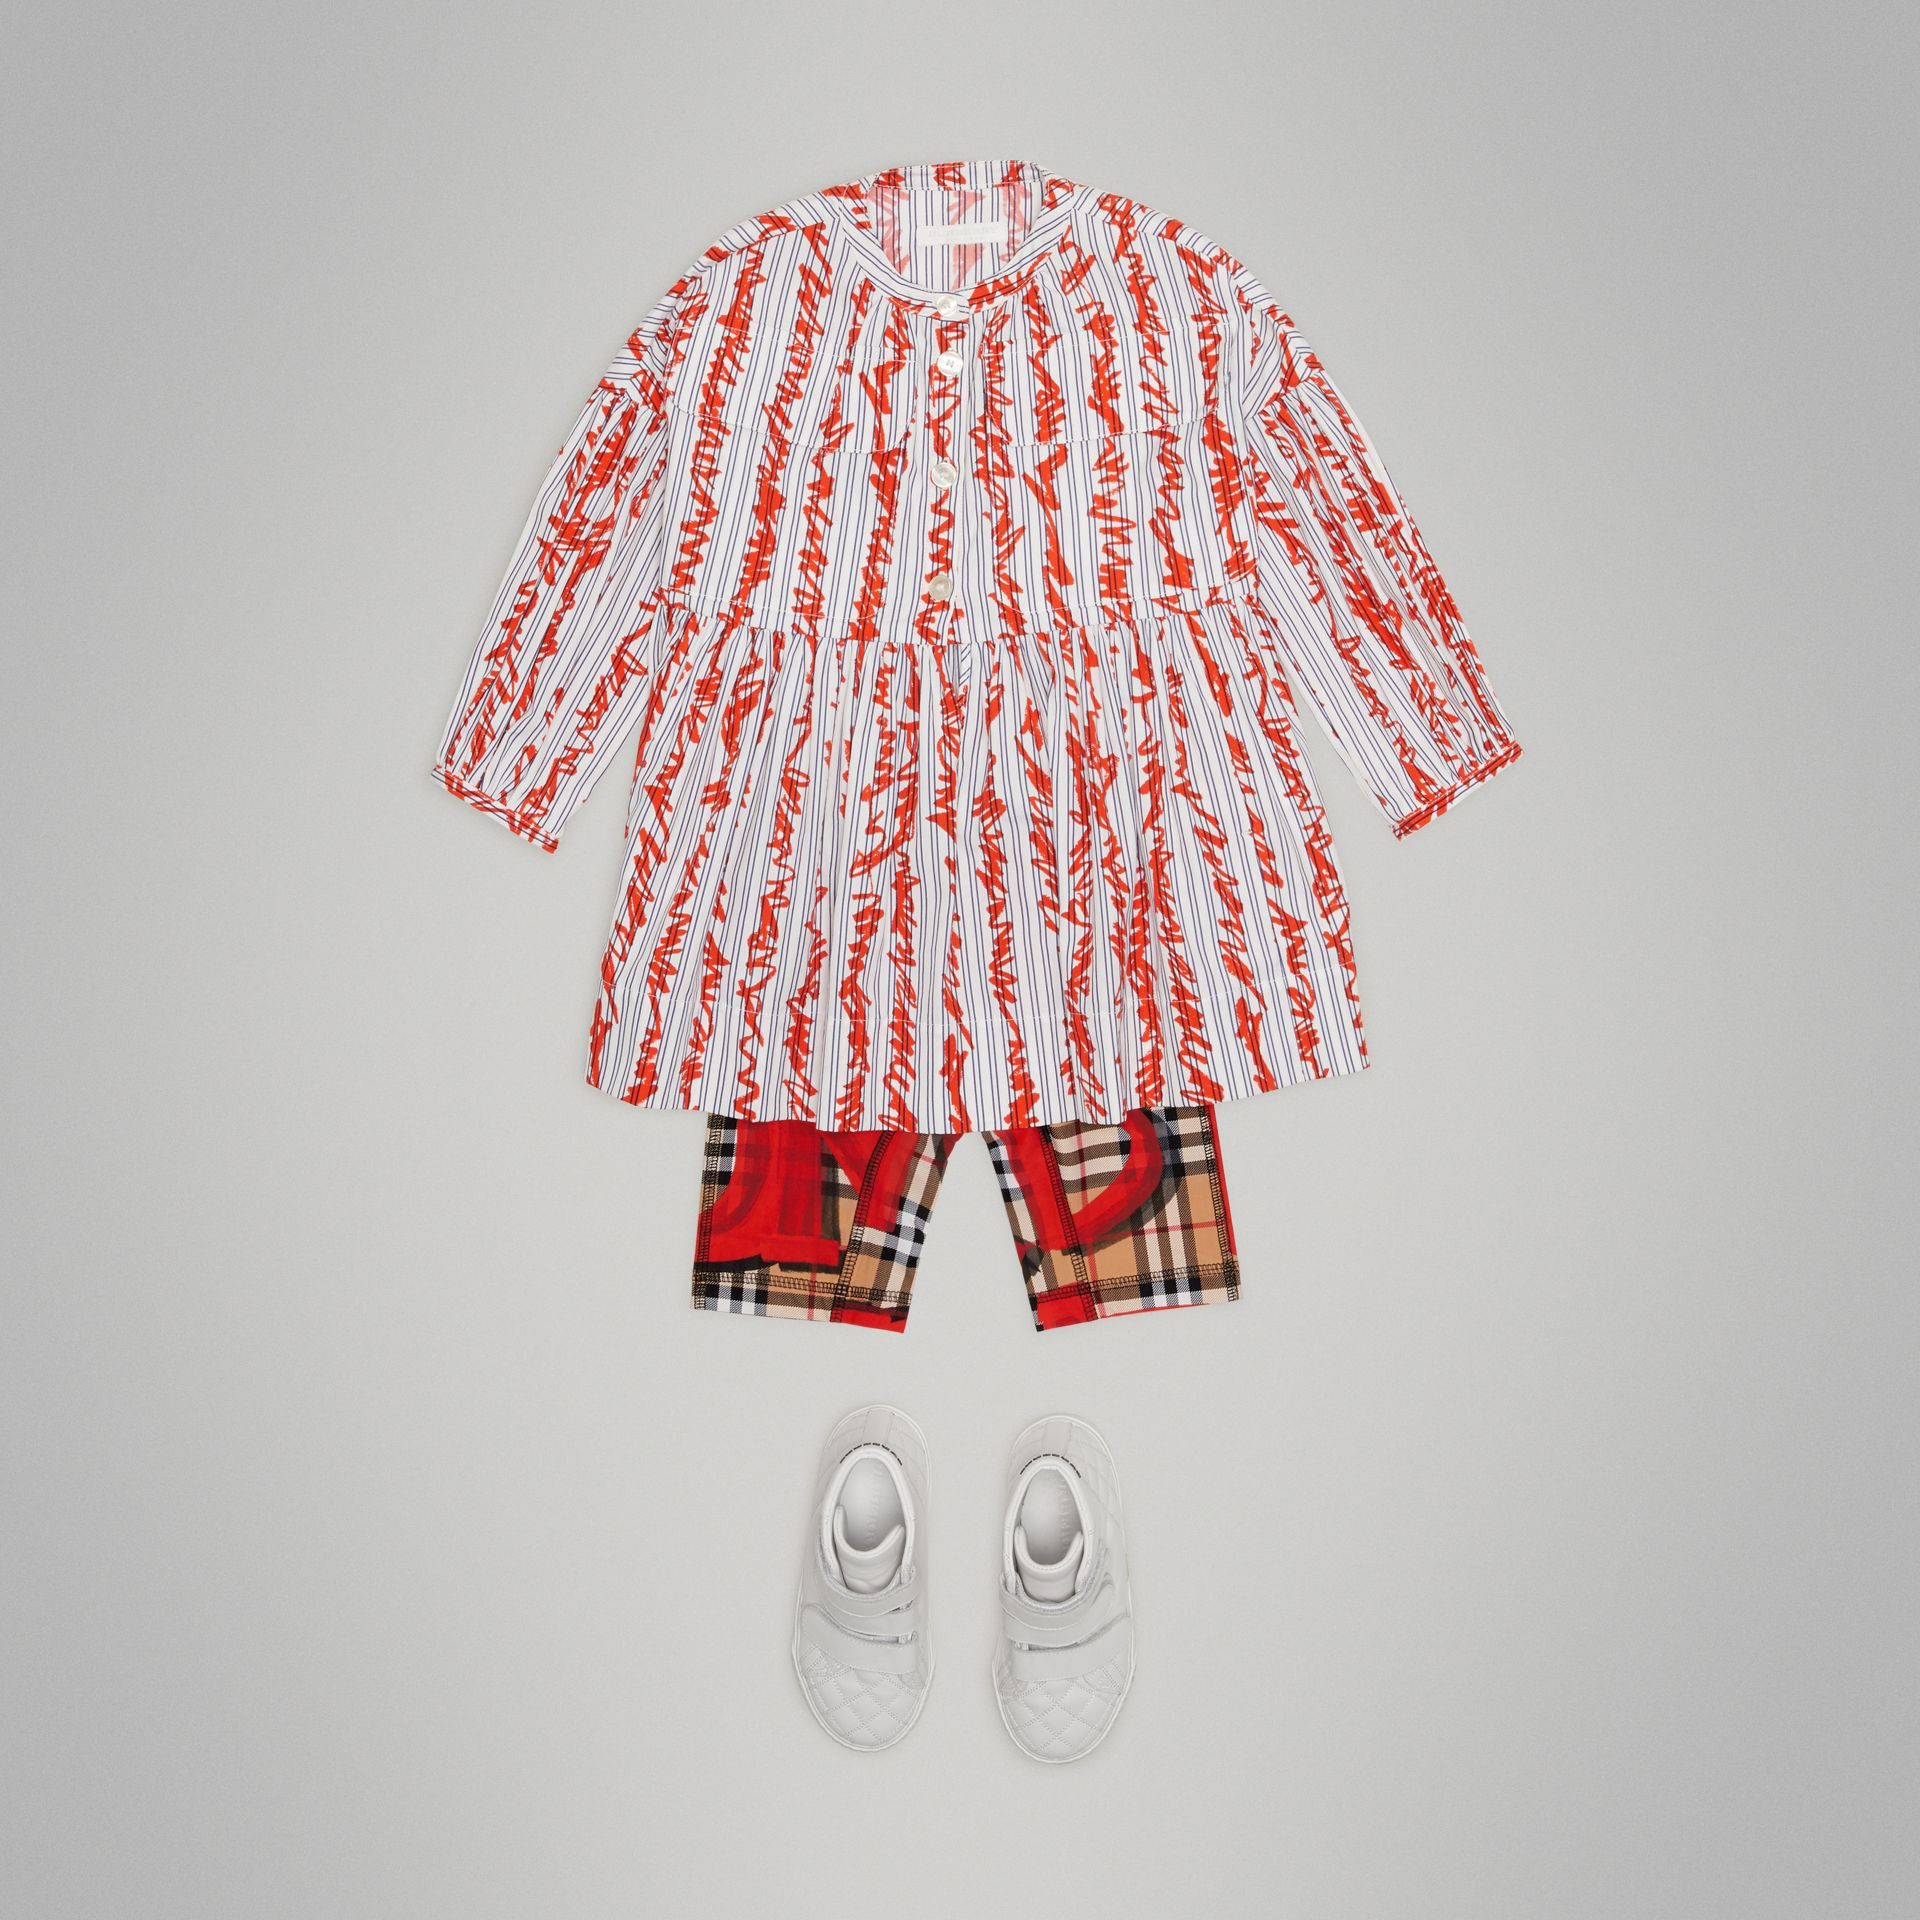 Graffiti Print Vintage Check Stretch Jersey Shorts in Bright Red - Children | Burberry United Kingdom - gallery image 2